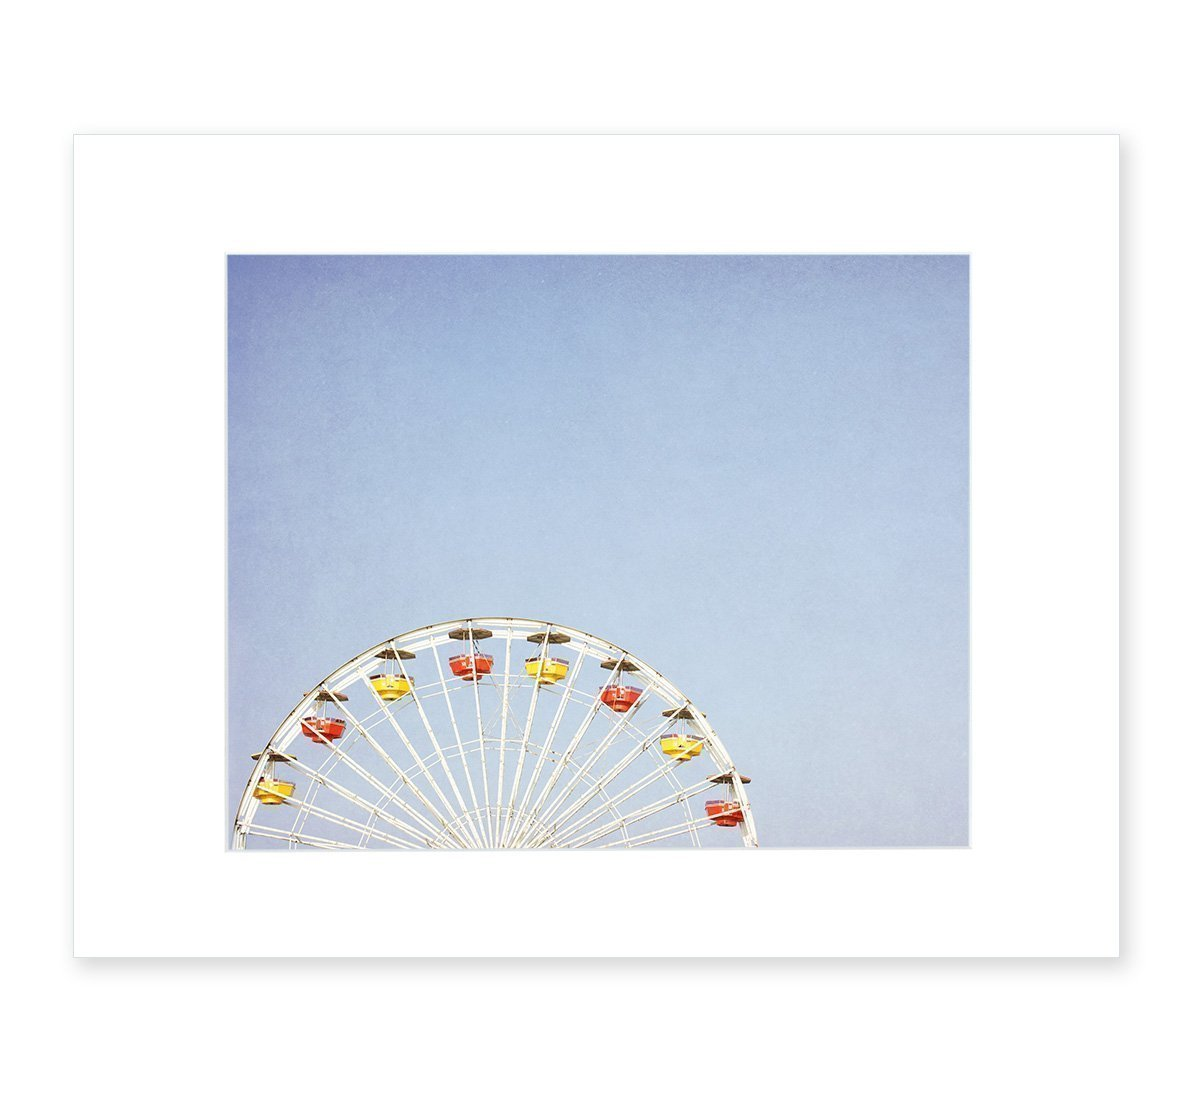 Blue Wall Art, Kids Nursery Picture, Carnival Photography, Modern Minimalist Decor, 8x10 Matted Photographic Print, (fits 11x14 Frame) 'Ferris Blue'